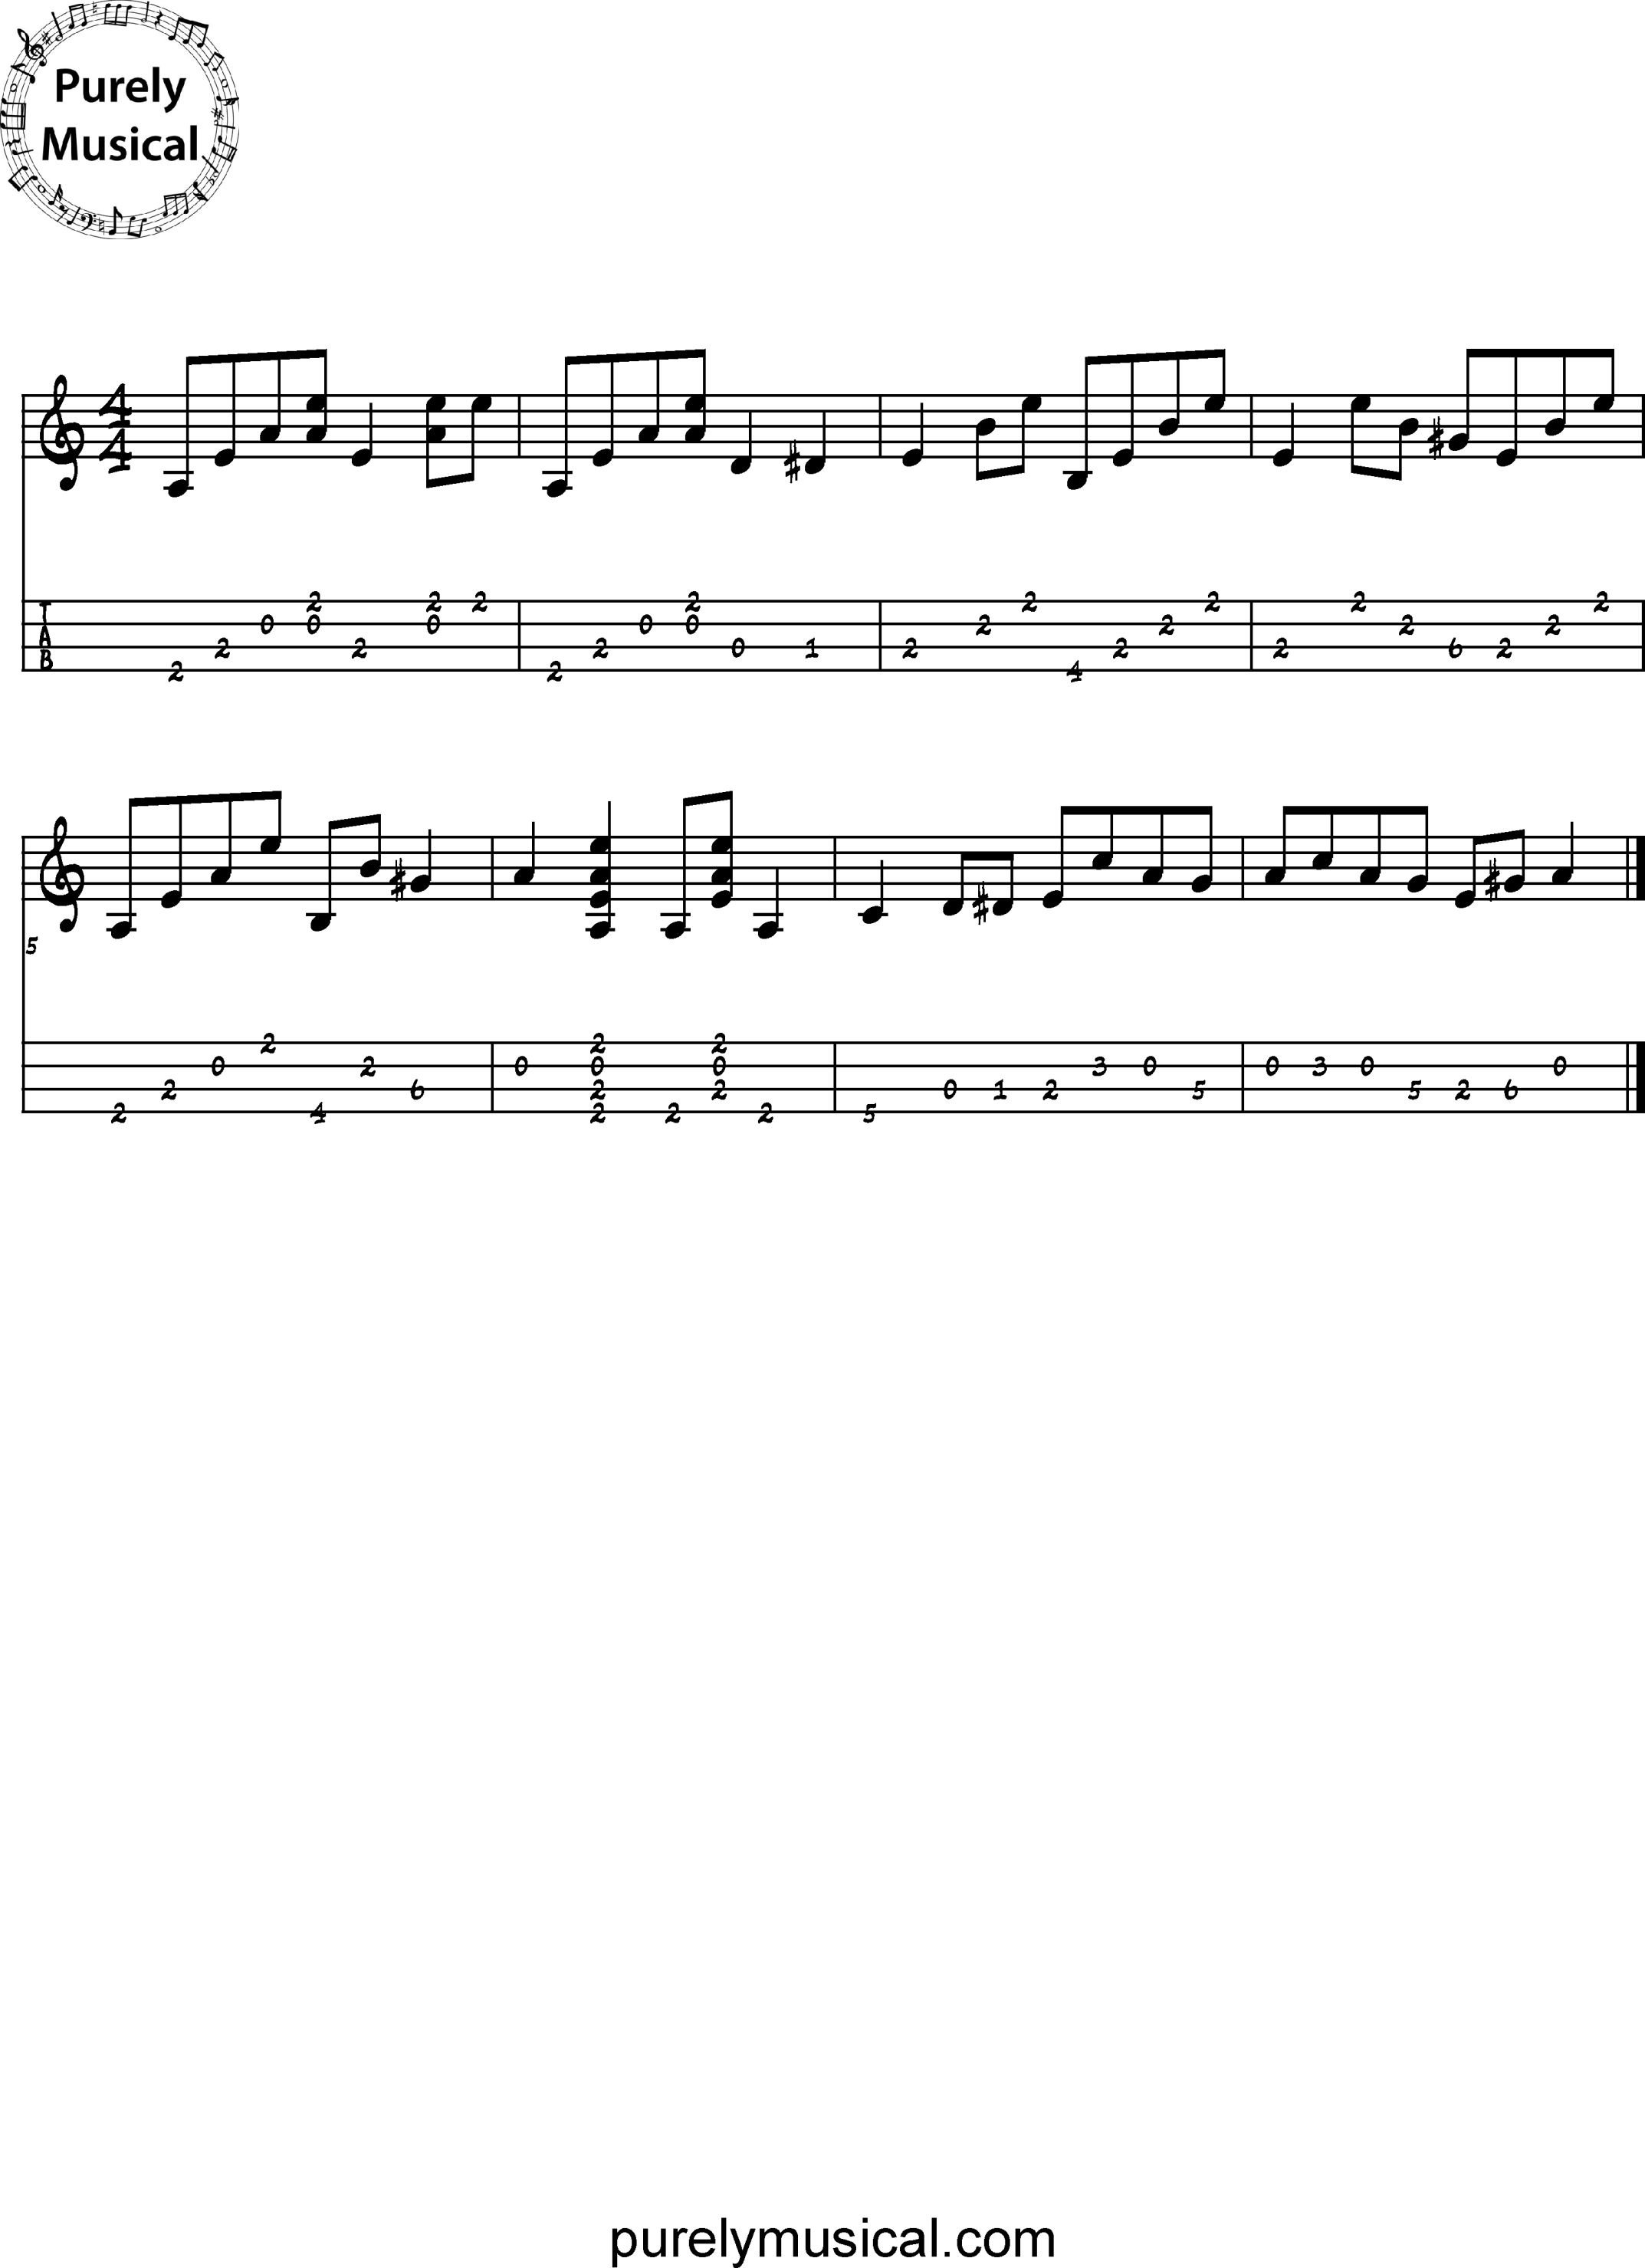 Advanced Tenor Rhythmic Accompaniment A Minor